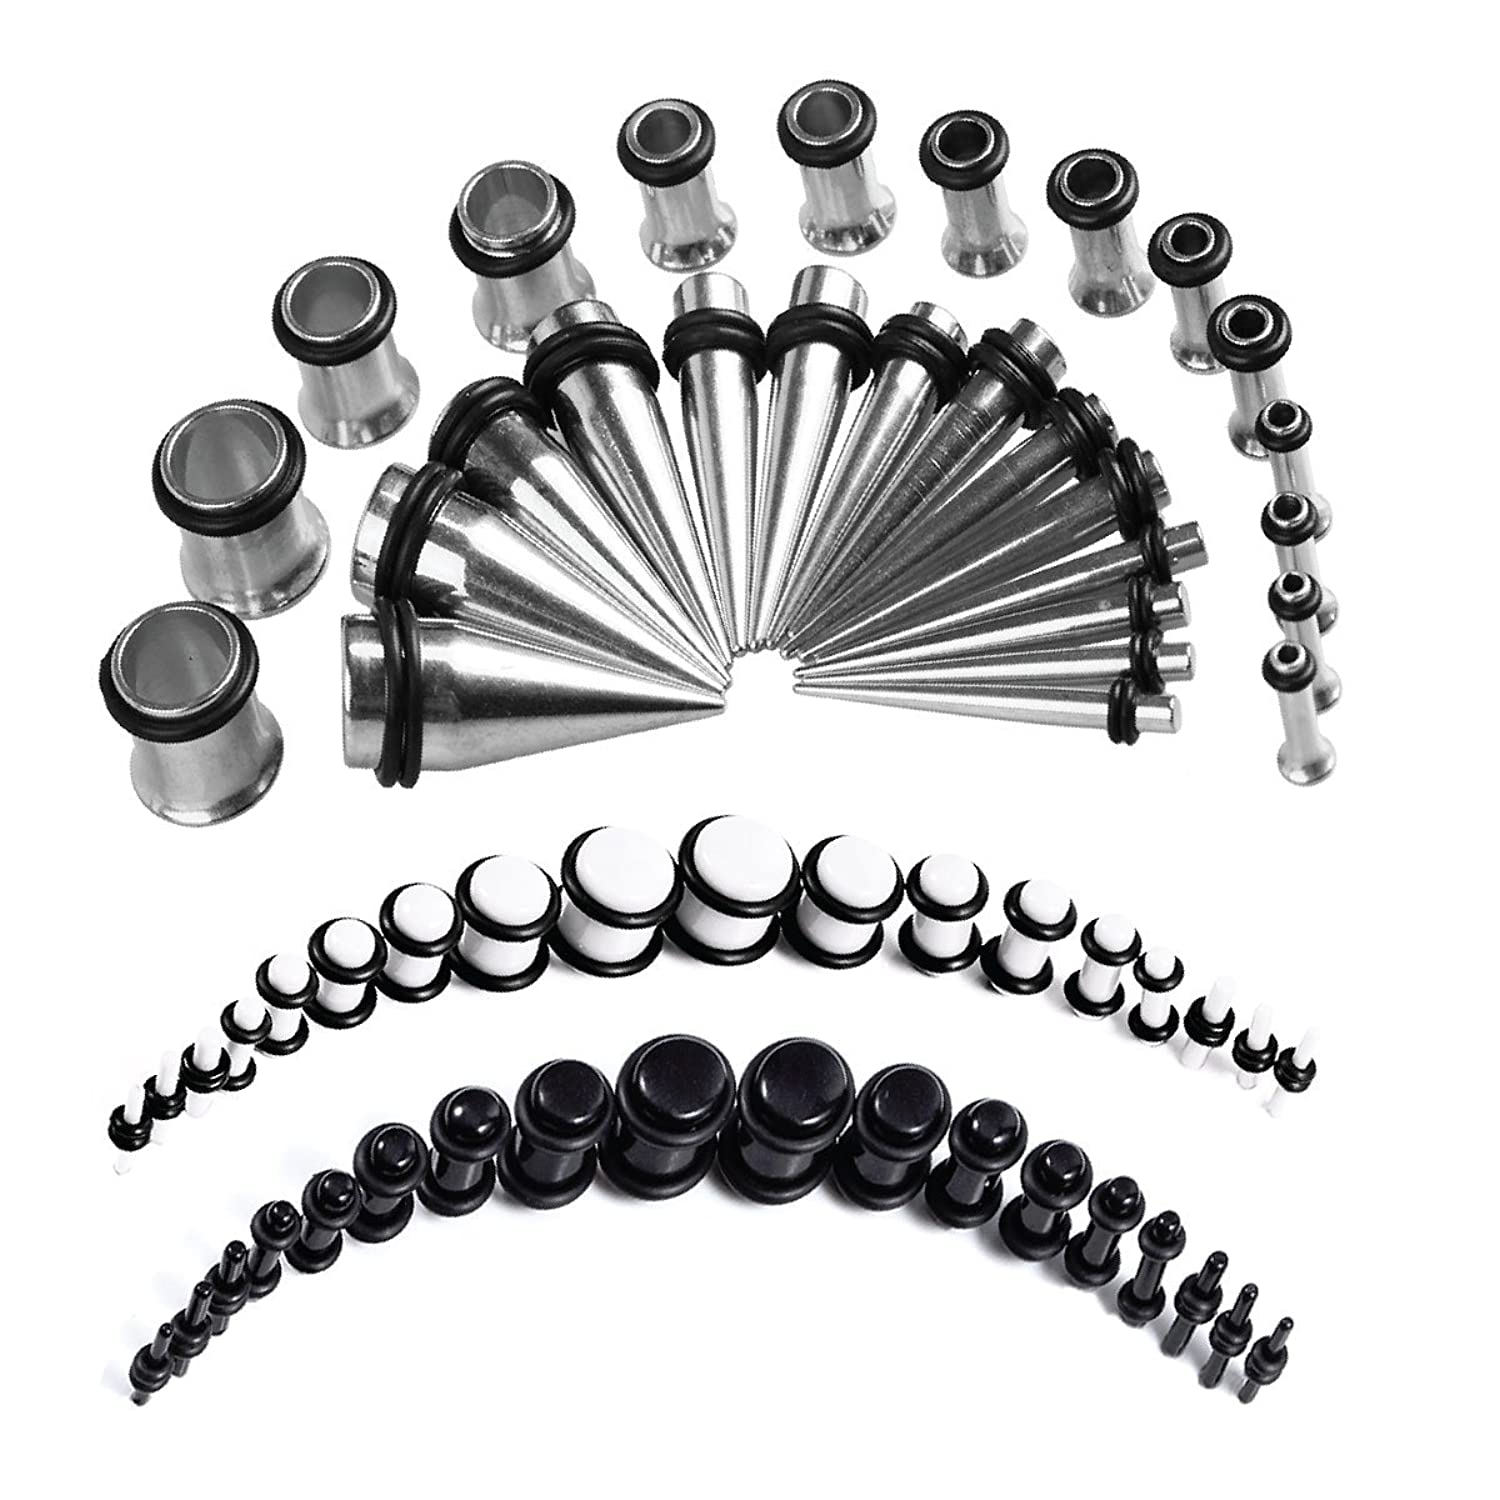 Piercing rings body jewelry amazon taper kit stretching kit 14g 00g stainless steel tunnels and acrylic tapers 14g geenschuldenfo Images